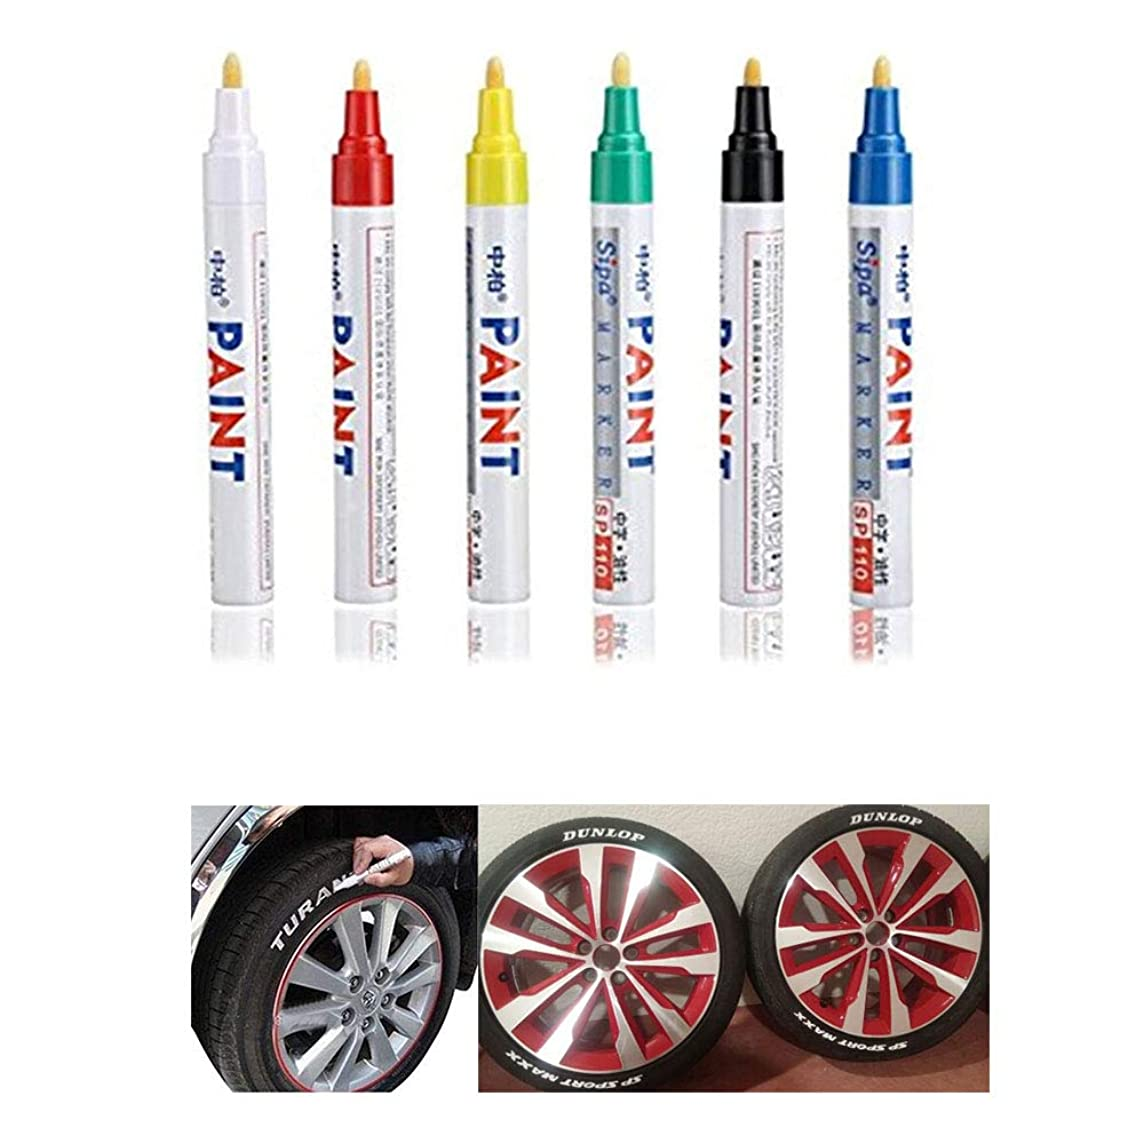 CHUDAN 6 Pieces Waterproof Tire Pen Tire Marker Car, Motorcycle Bicycle Tire Treading Marker Pen Permanent Tire Marker Pen Fills Scratches